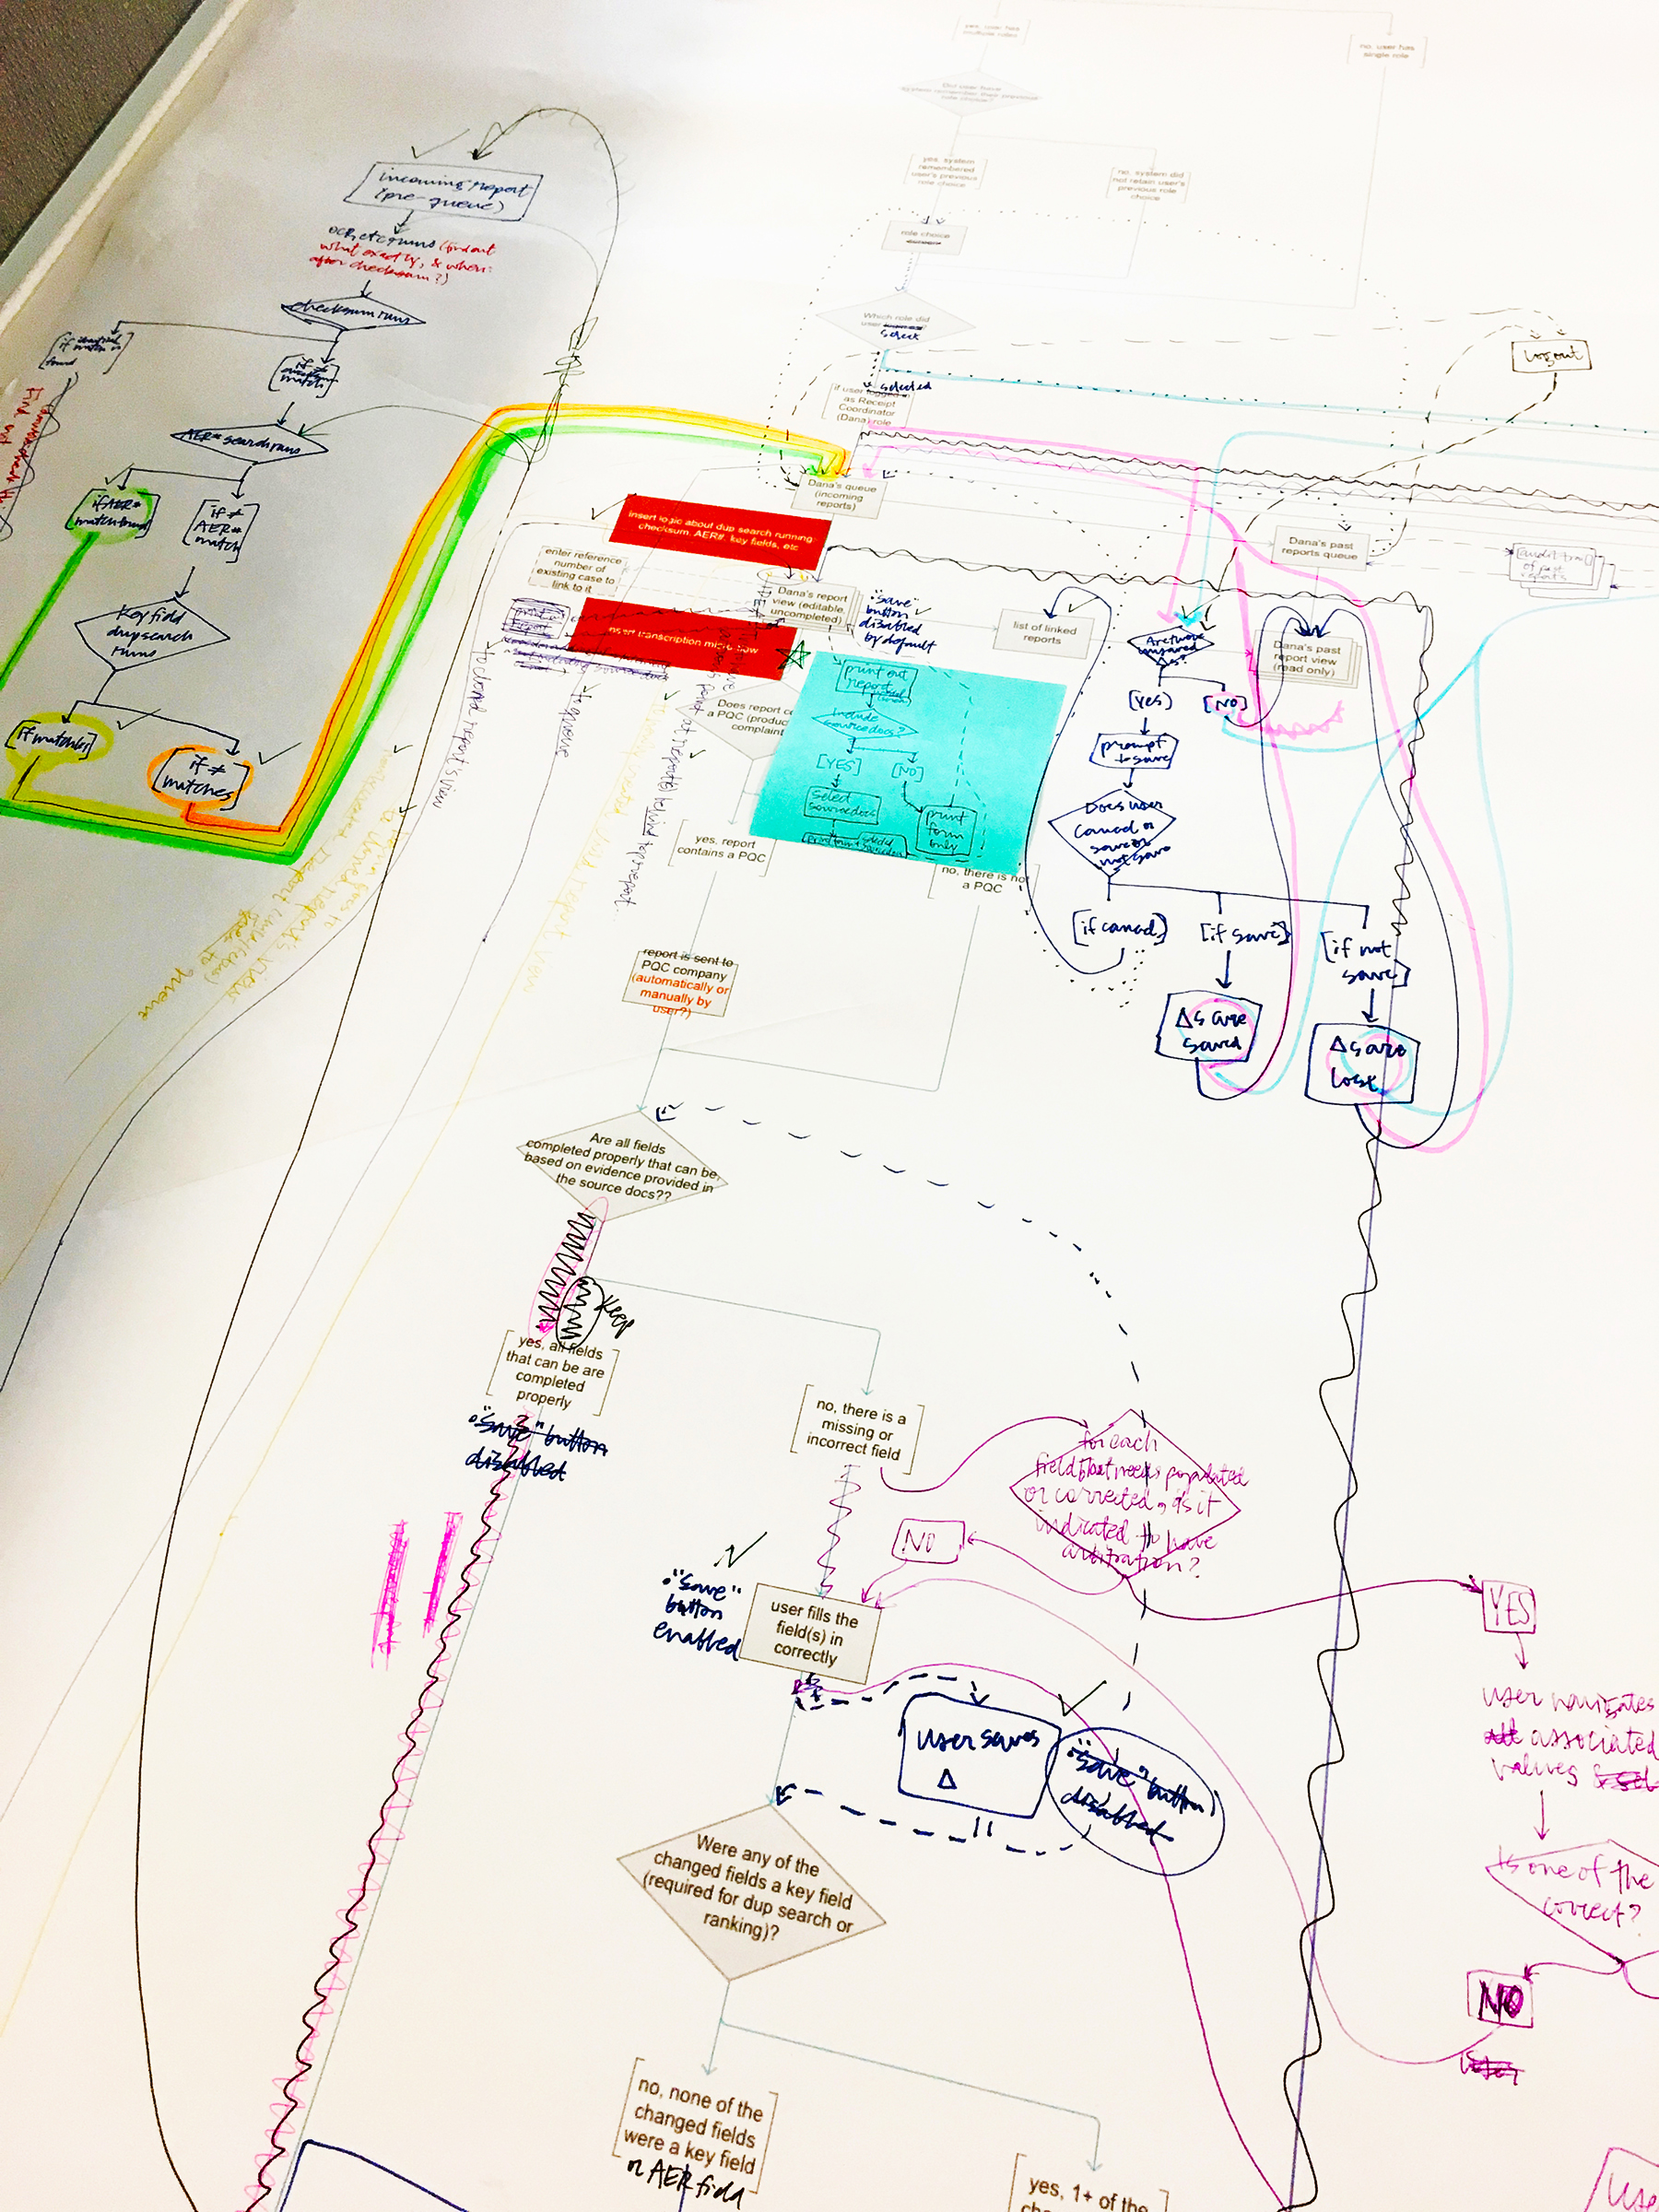 Another long printout covered in hand-drawn revisions and color-codings from a different angle.